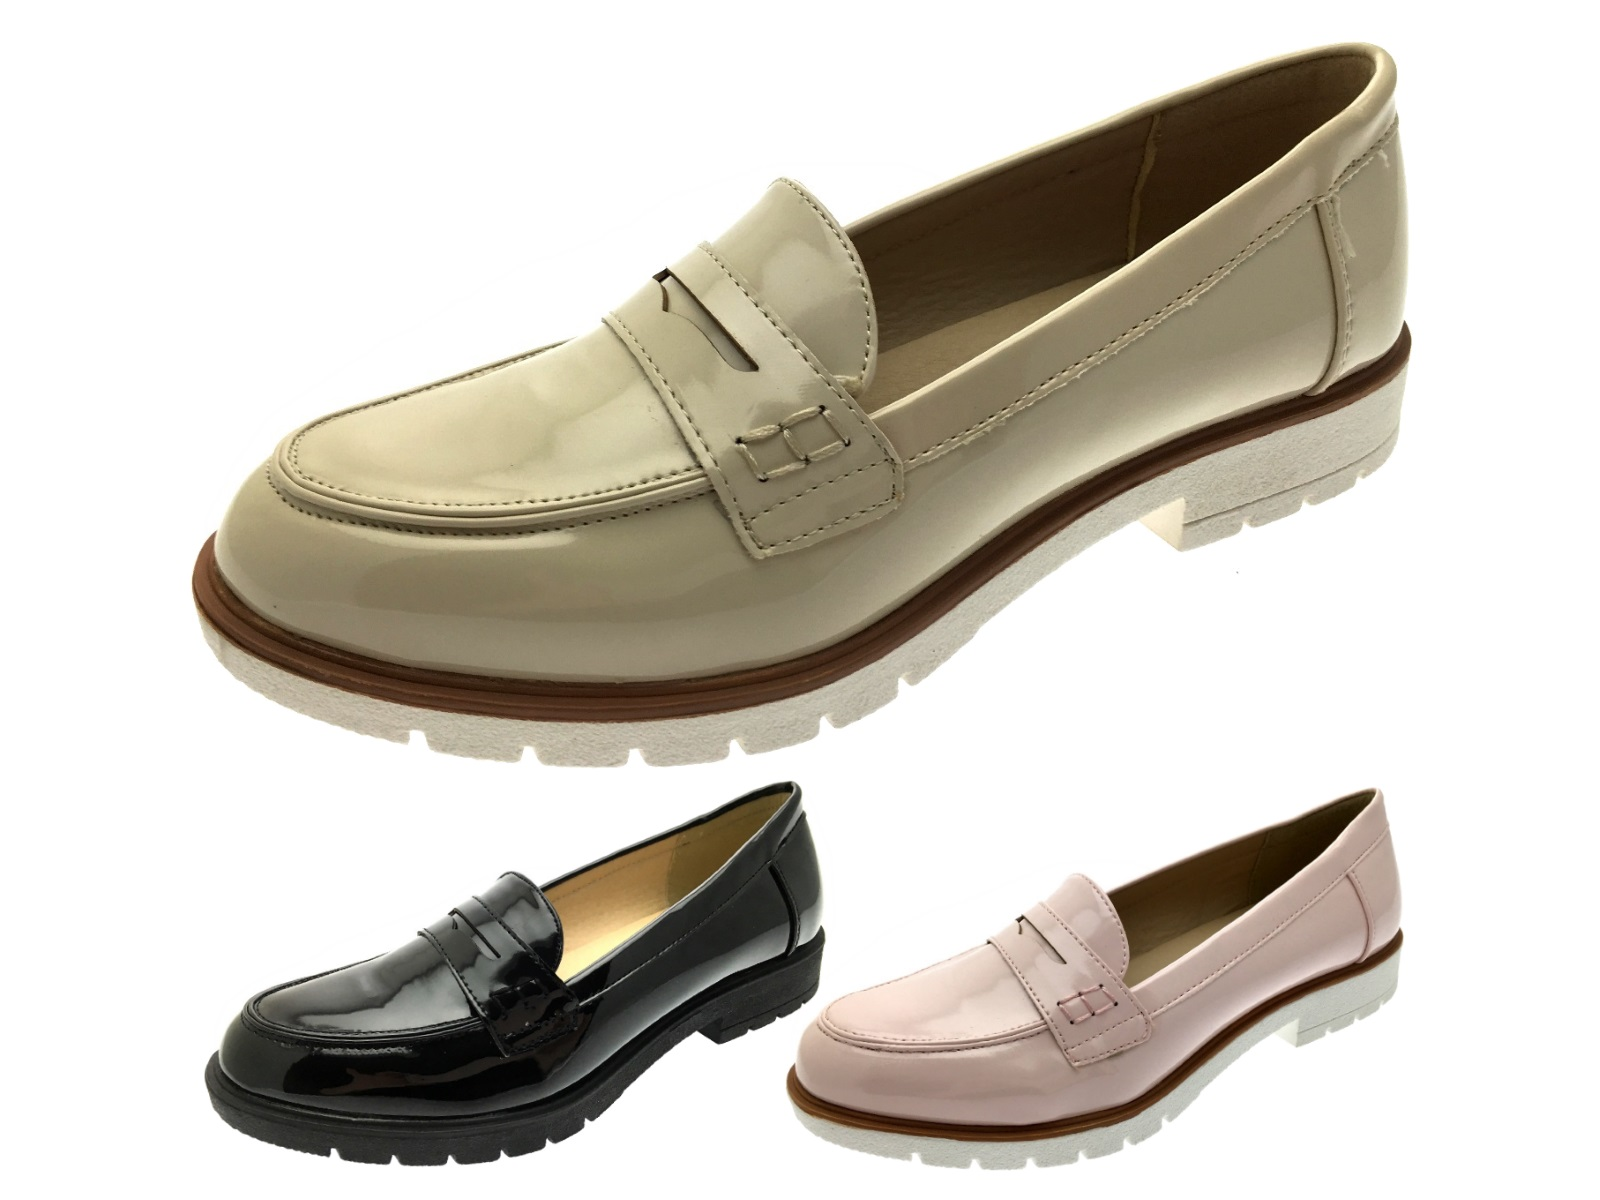 Loafers always add an extra dash of dapper to woman's look. Featuring loafers, penny loafers, boat shoe and oxfords style shoes, cpdlp9wivh506.ga has the top notch collection of women's loafers.